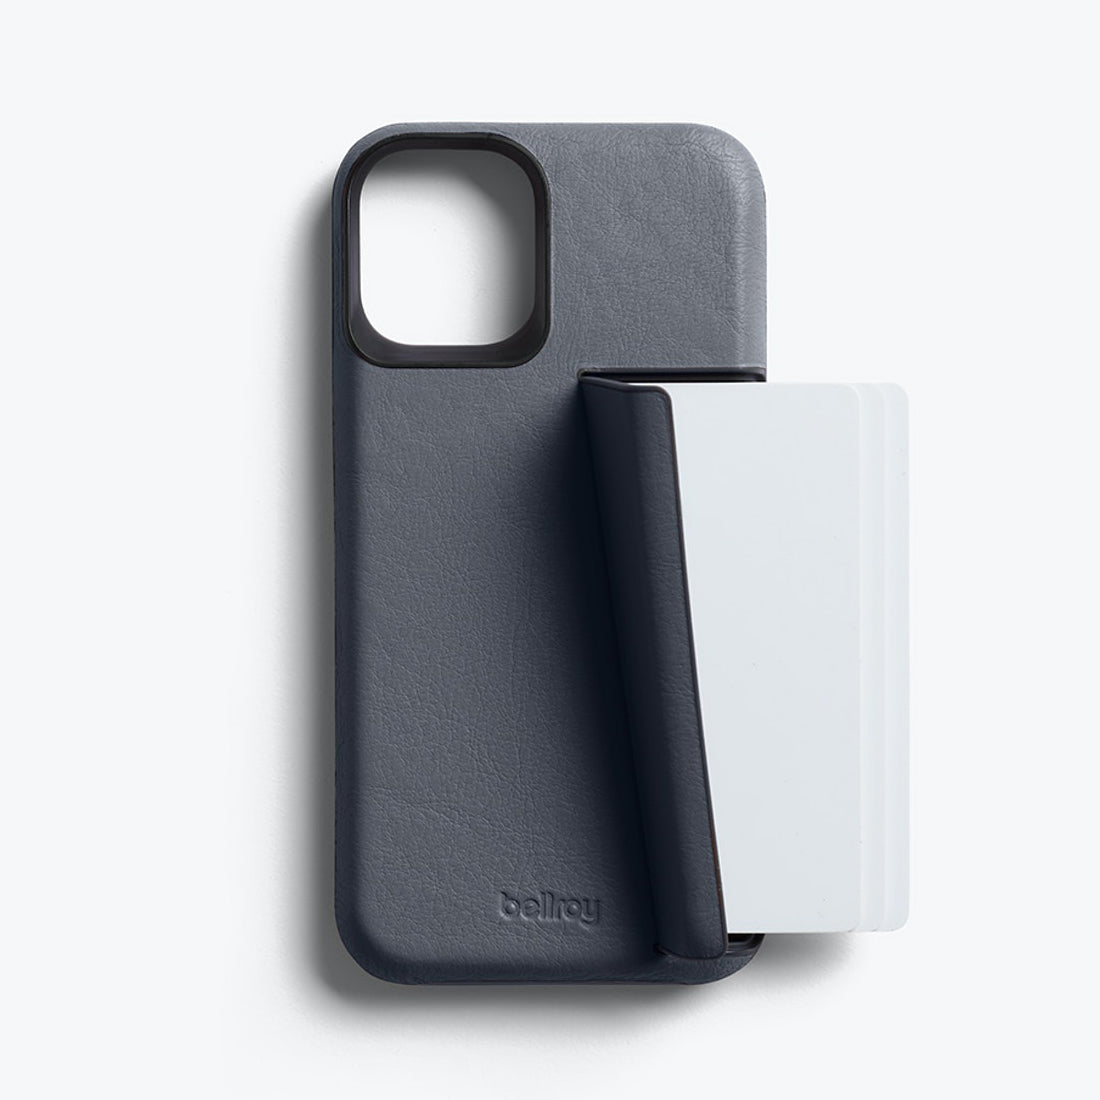 Bellroy 3-Card Genuine Leather Wallet Case For iPhone iPhone 12 mini - GRAPHITE